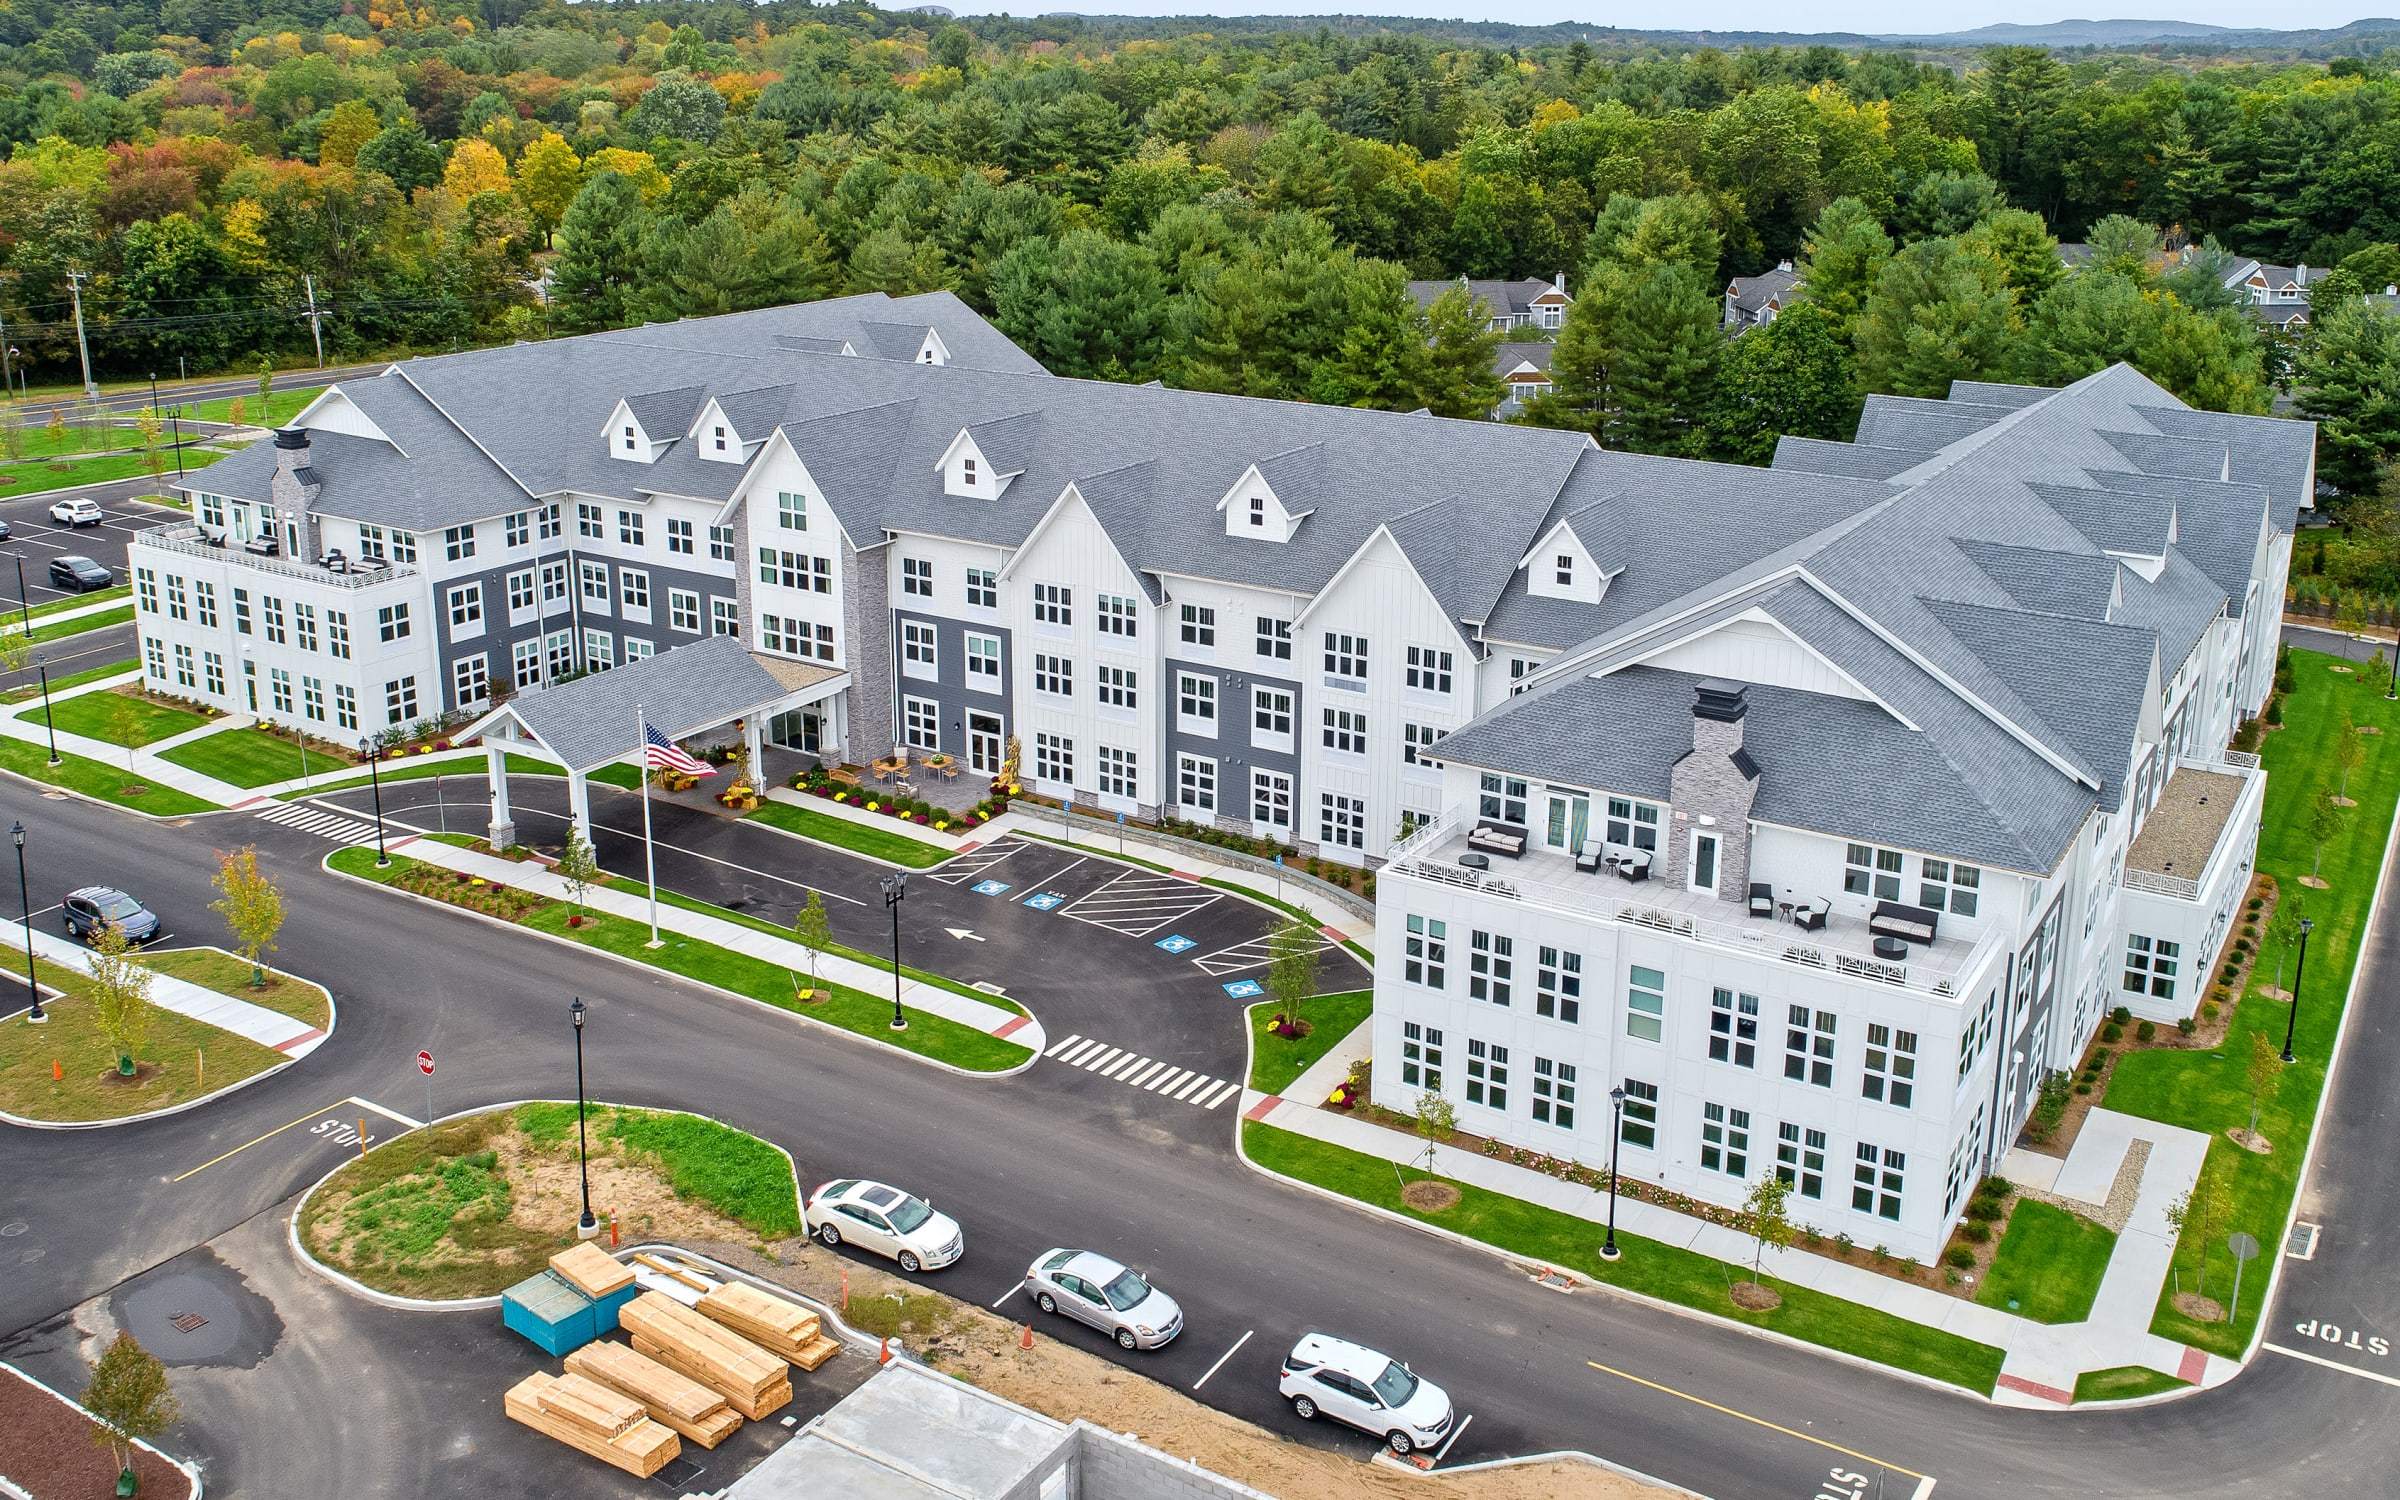 Exclusive offers at Anthology of Simsbury in Simsbury, Connecticut